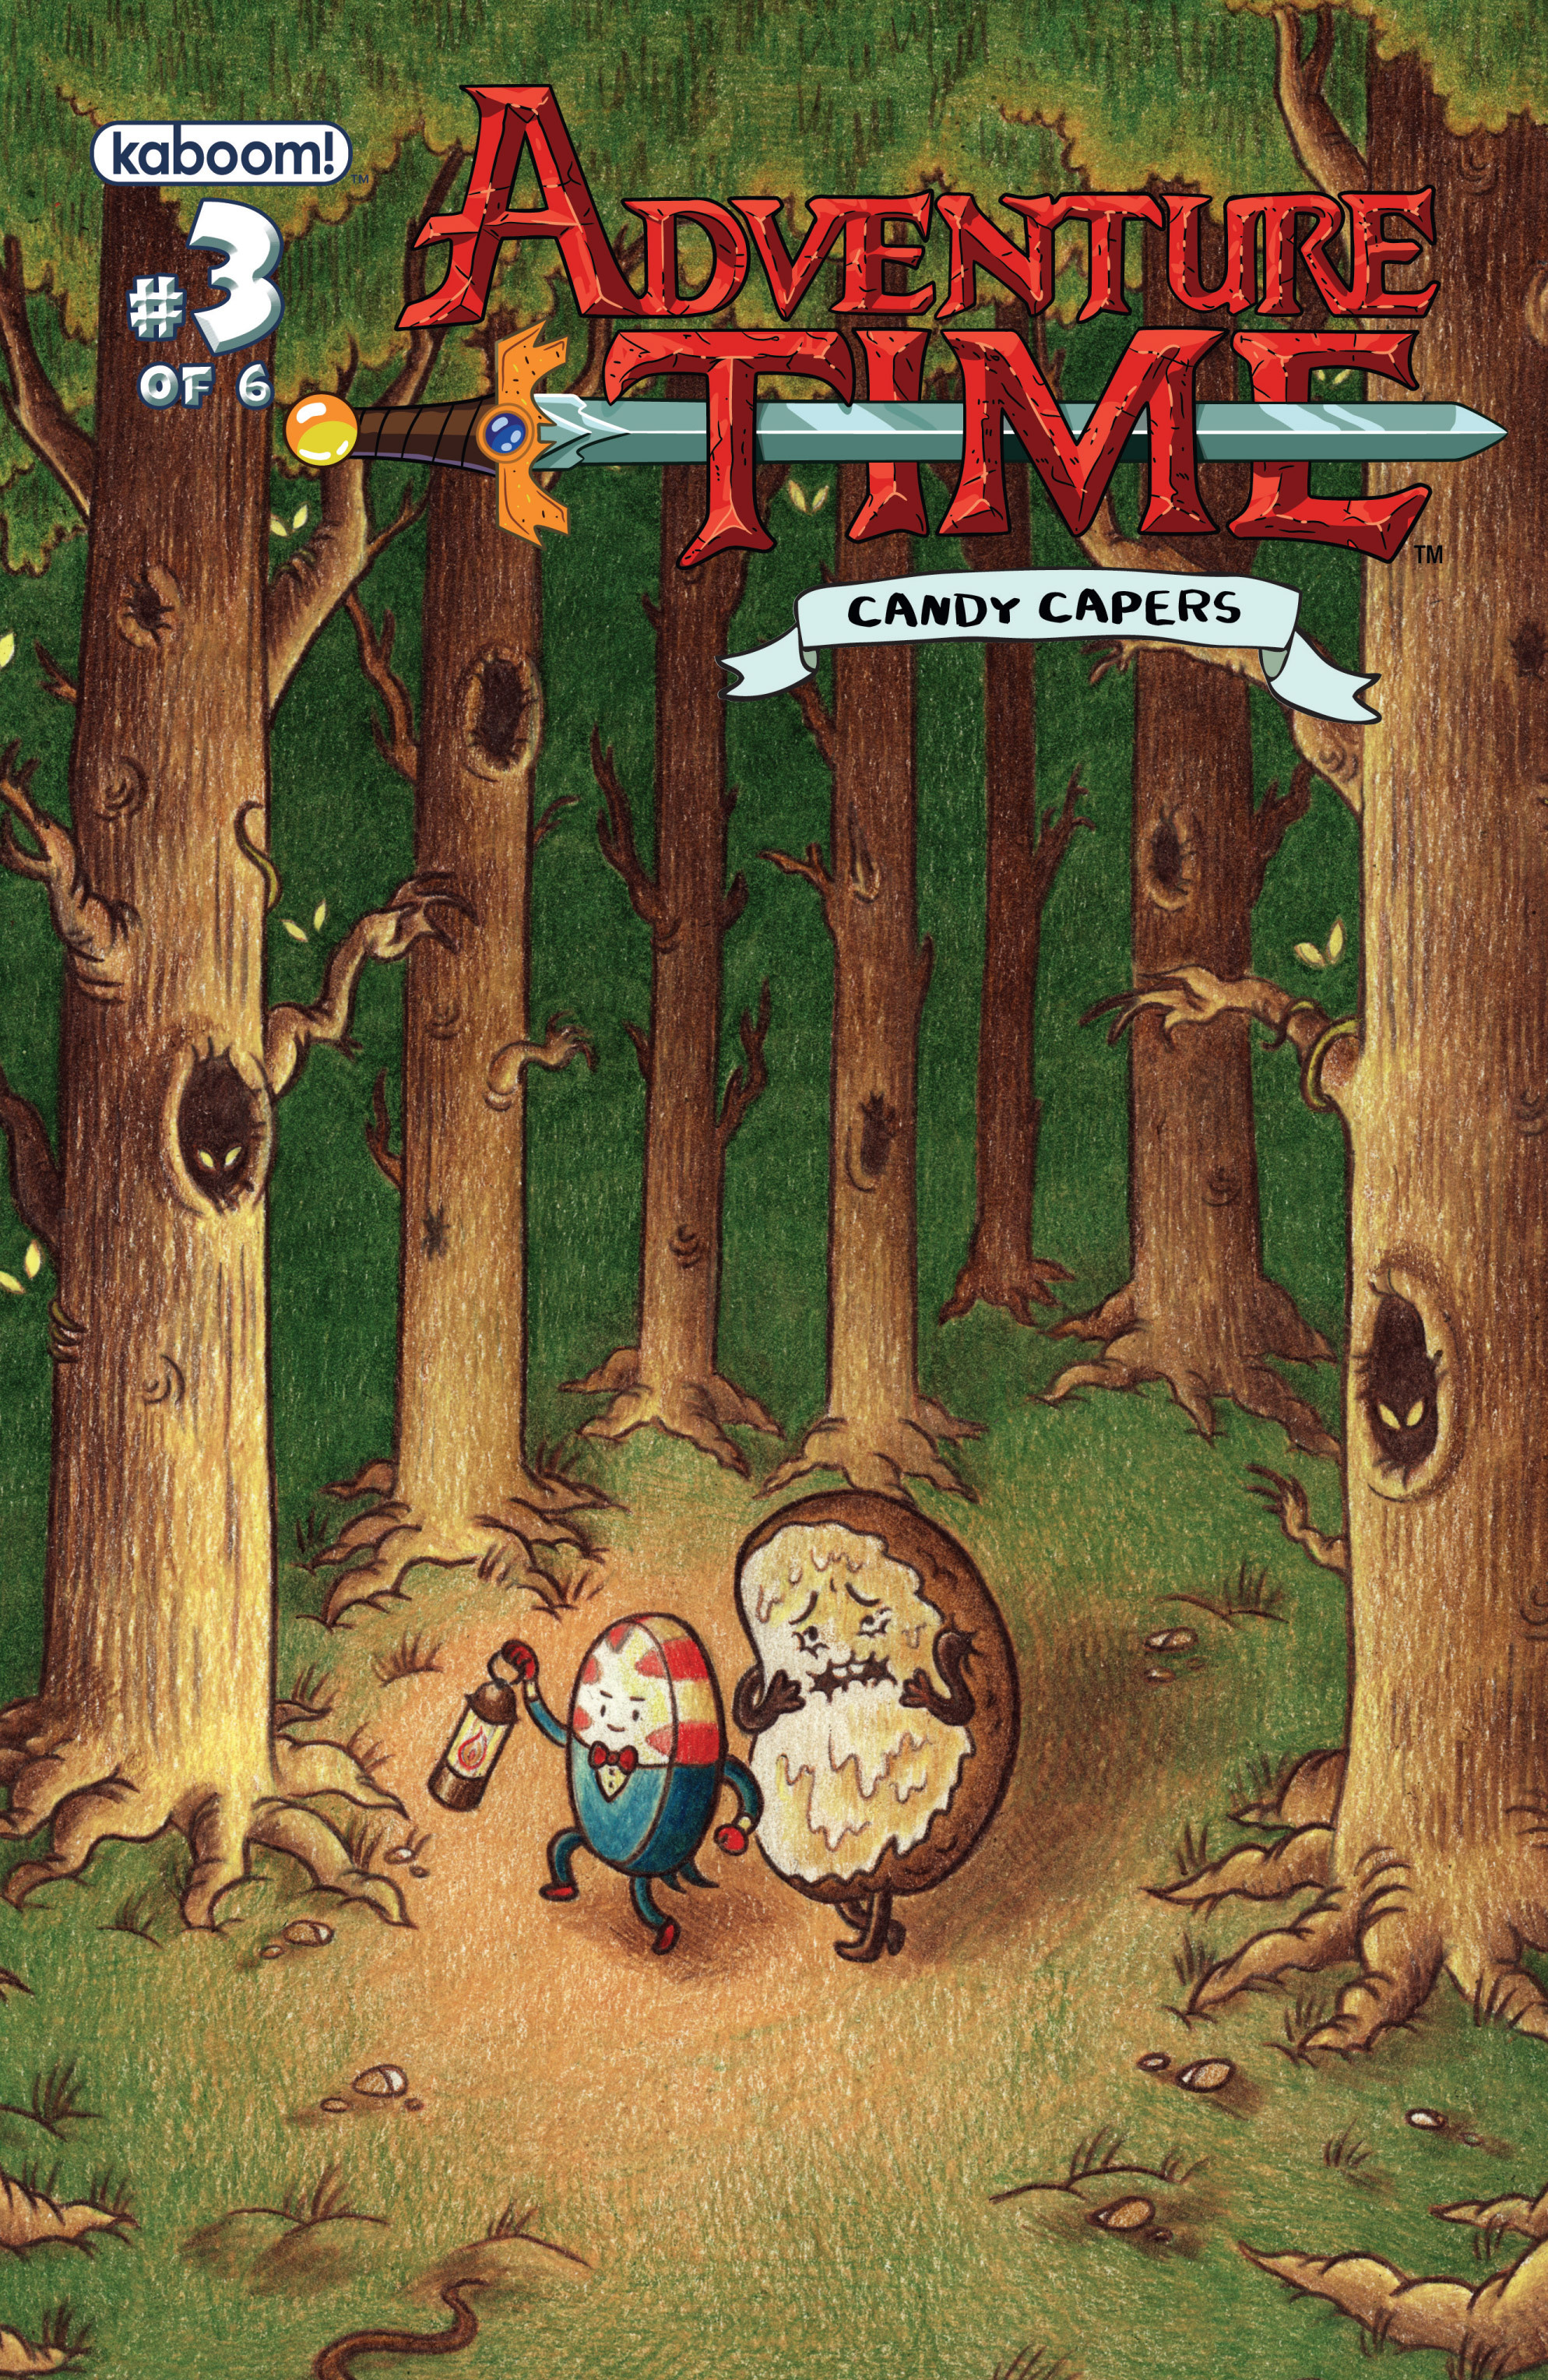 Read online Adventure Time: Candy Capers comic -  Issue #3 - 2